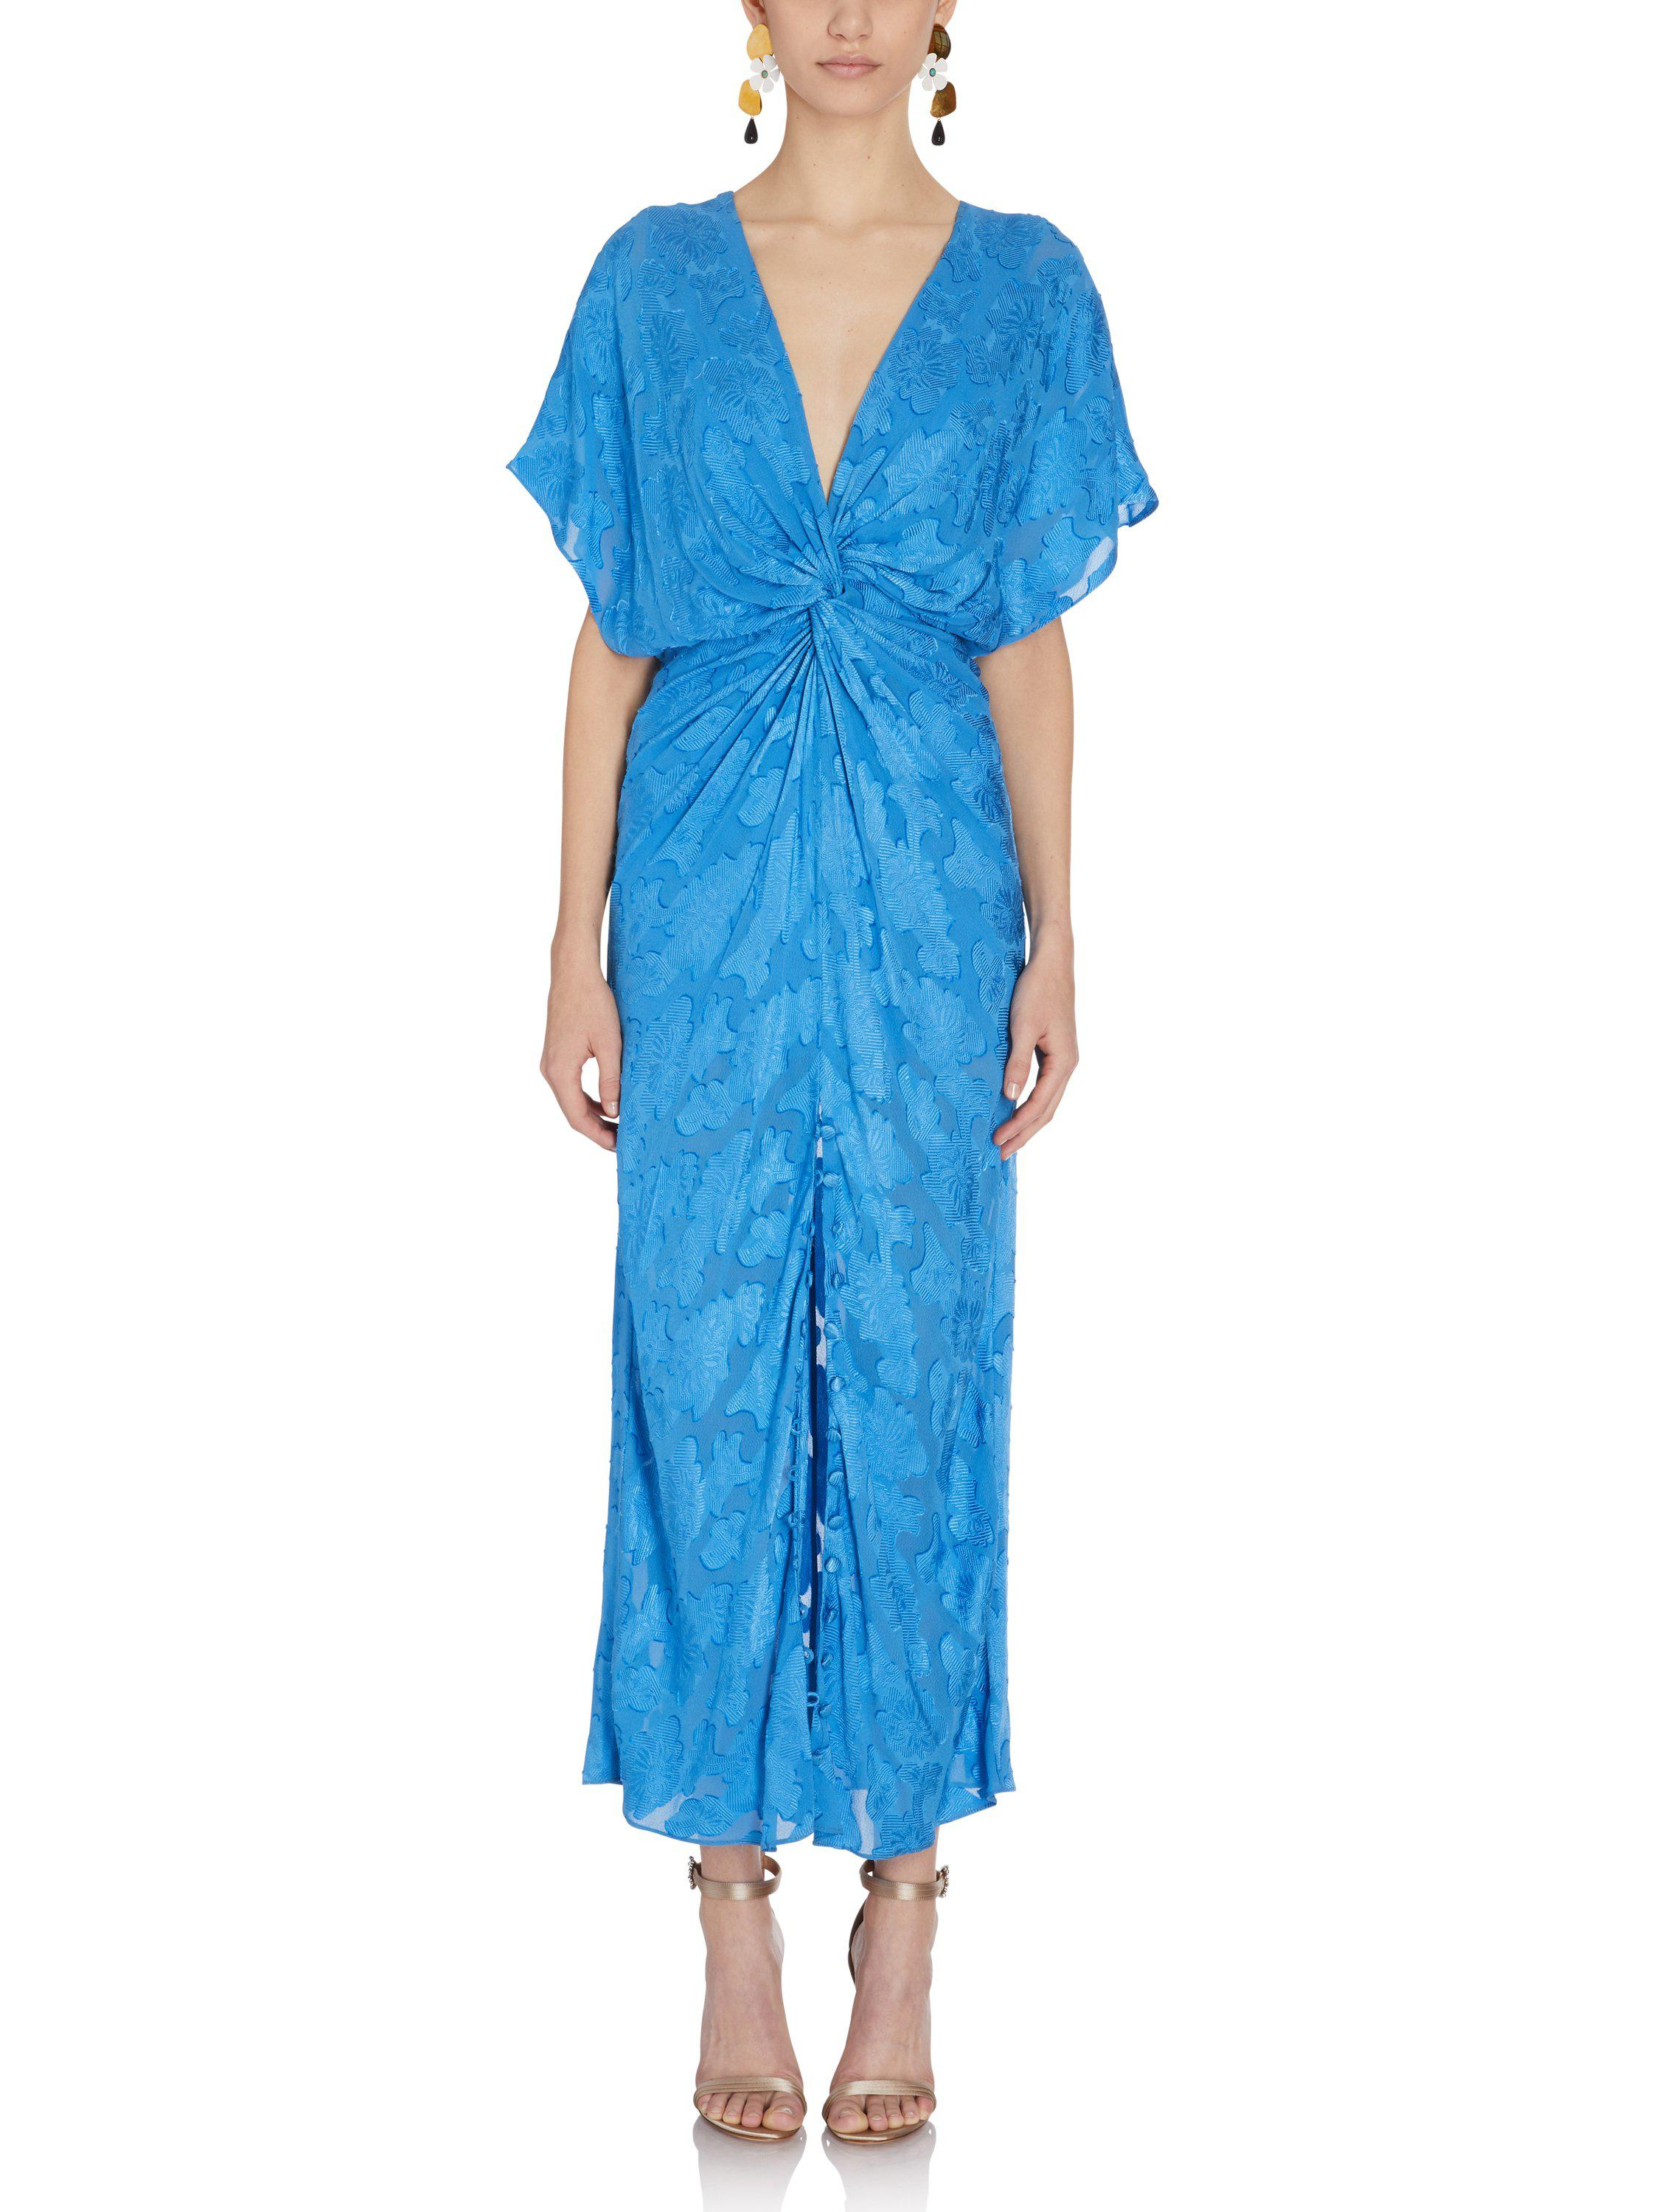 2018 New Cheap Price Jackie knot front dress - Blue Prabal Gurung Discount Sale Free Shipping Latest Collections Stockist Online Shopping Online Sale Online 29YEpprDh